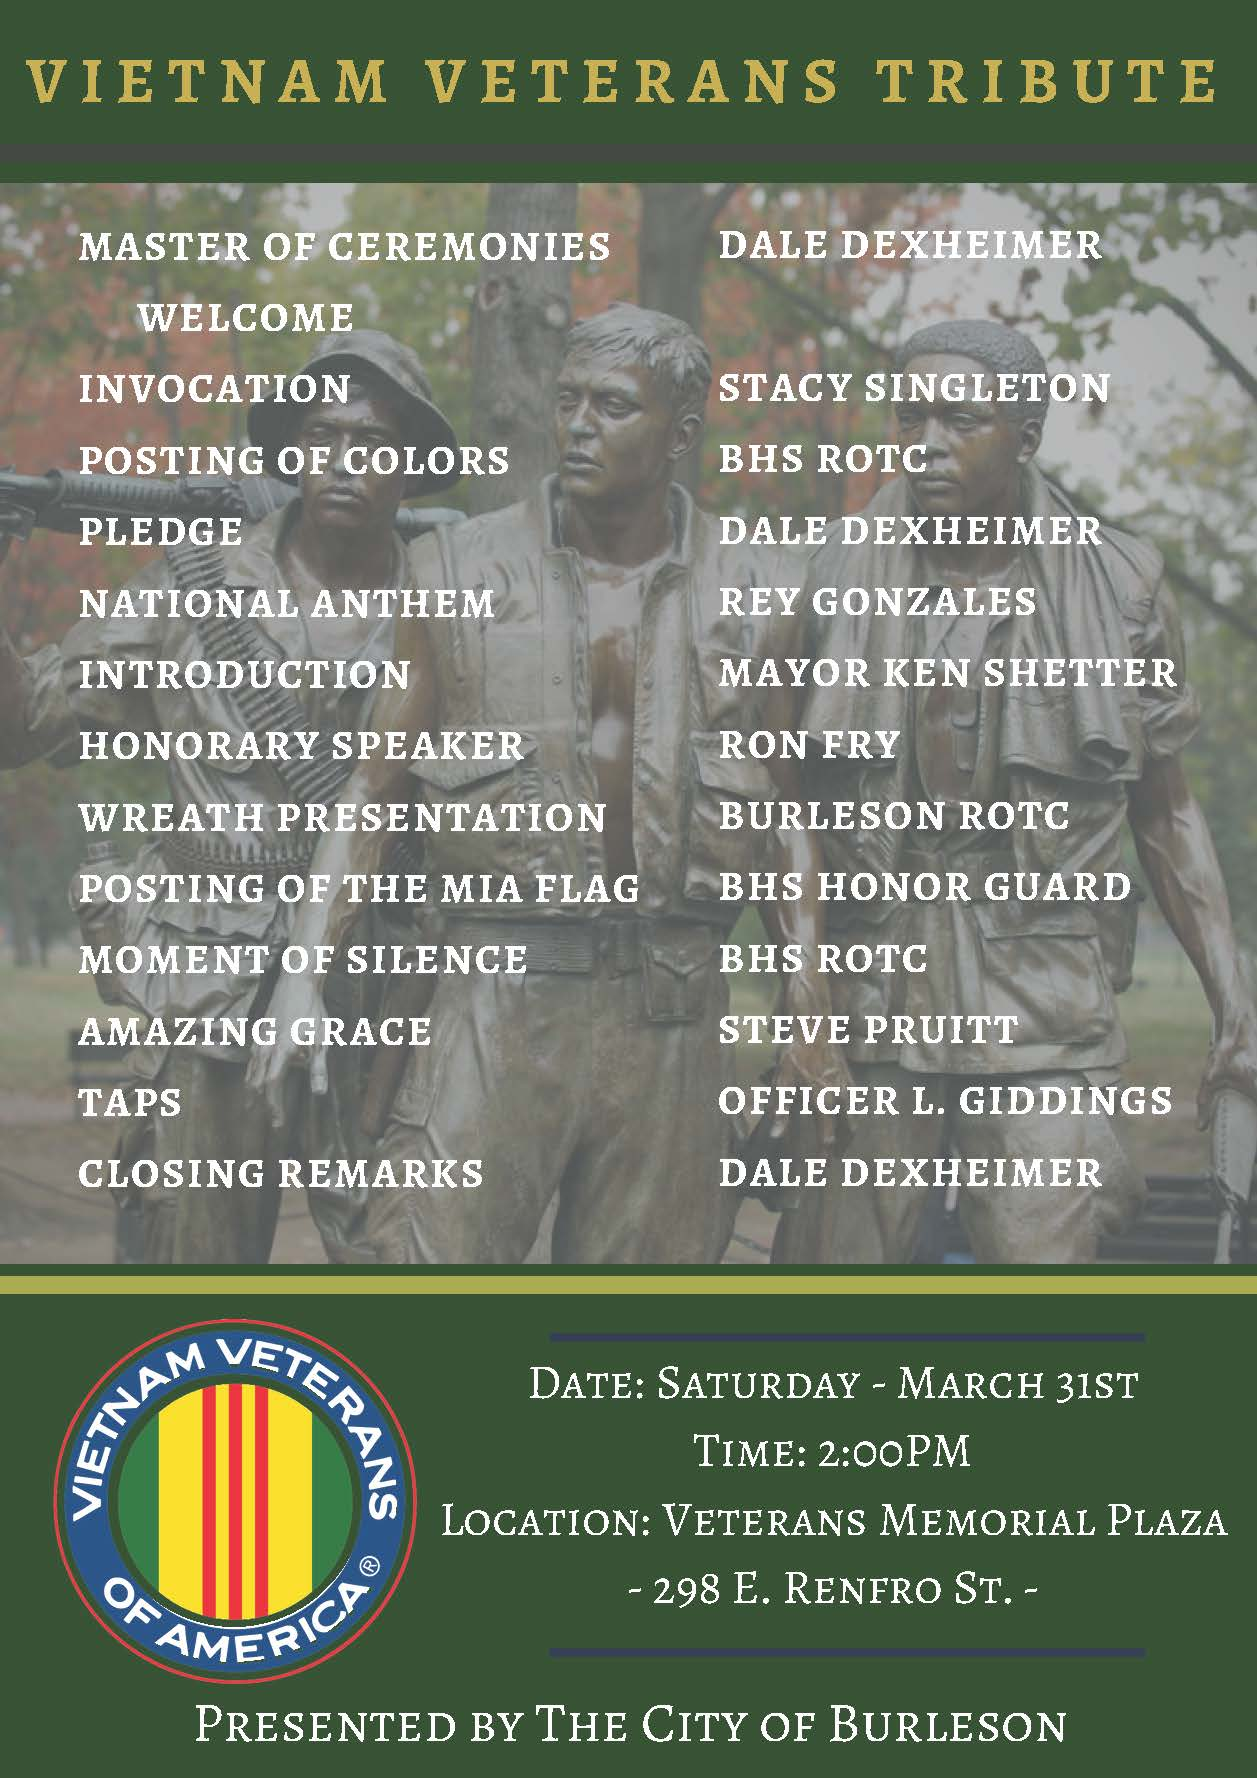 Veterans Event Schedule_March 31_ 2018